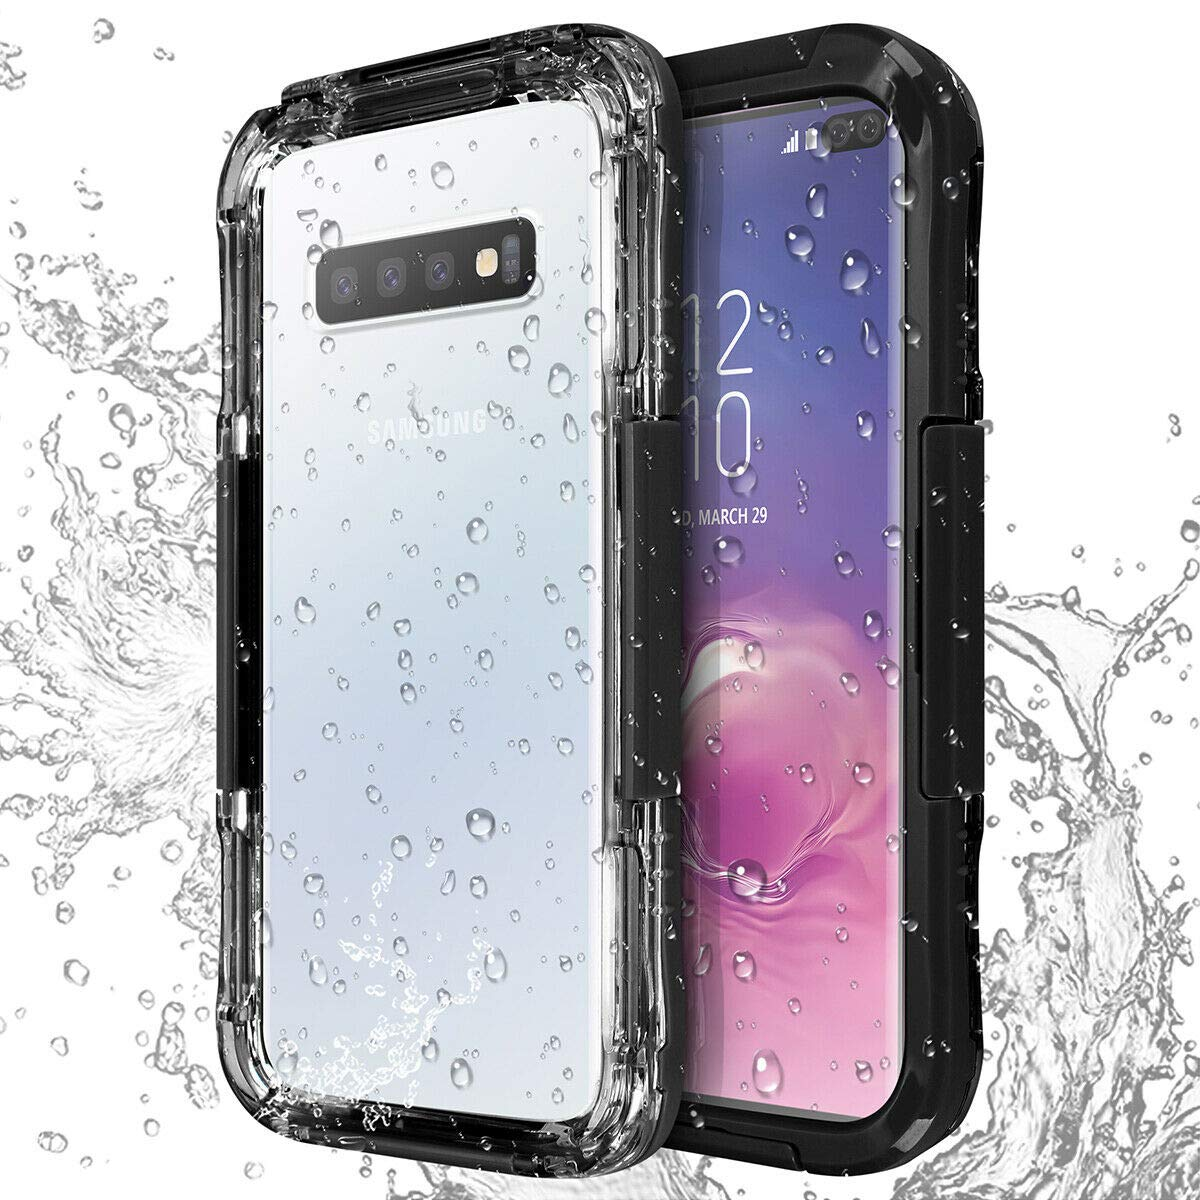 XuBa for Samsung Galaxy S10//S10 Plus//S10e Shockproof Waterproof Dirt Proof Case Full Cover Black S10e